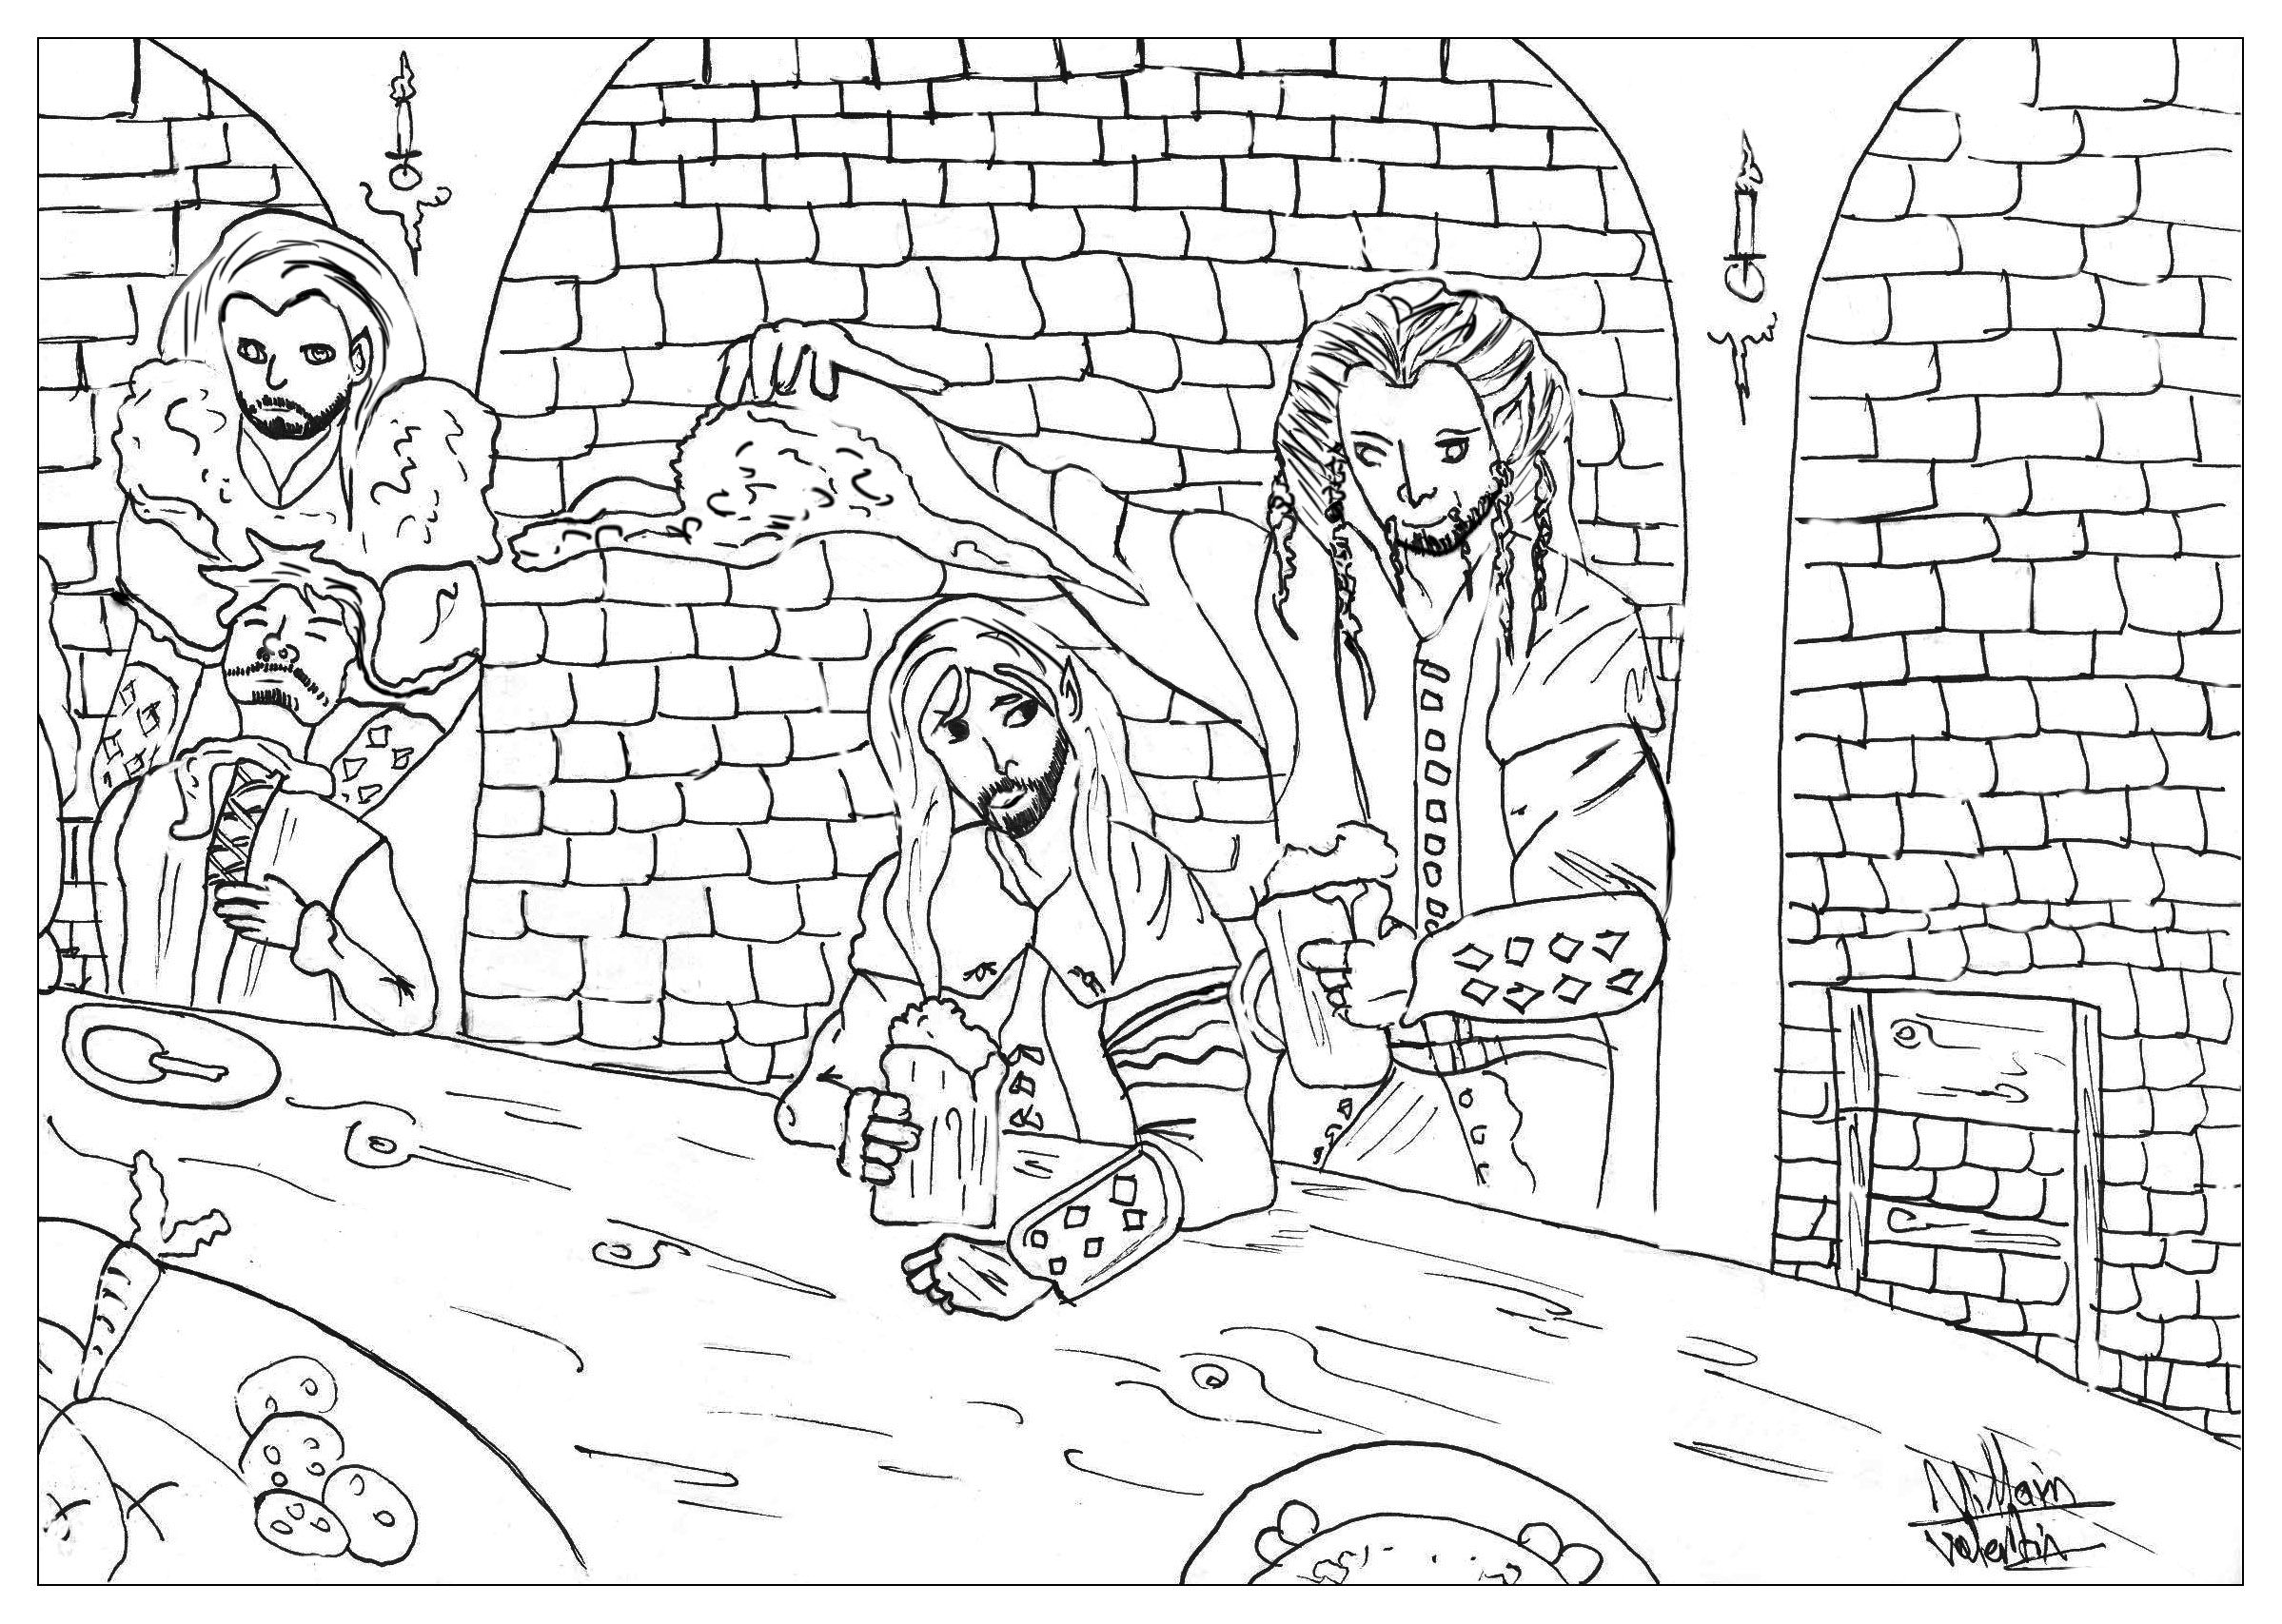 Hobbit1 - Valentin Adult Coloring Pages